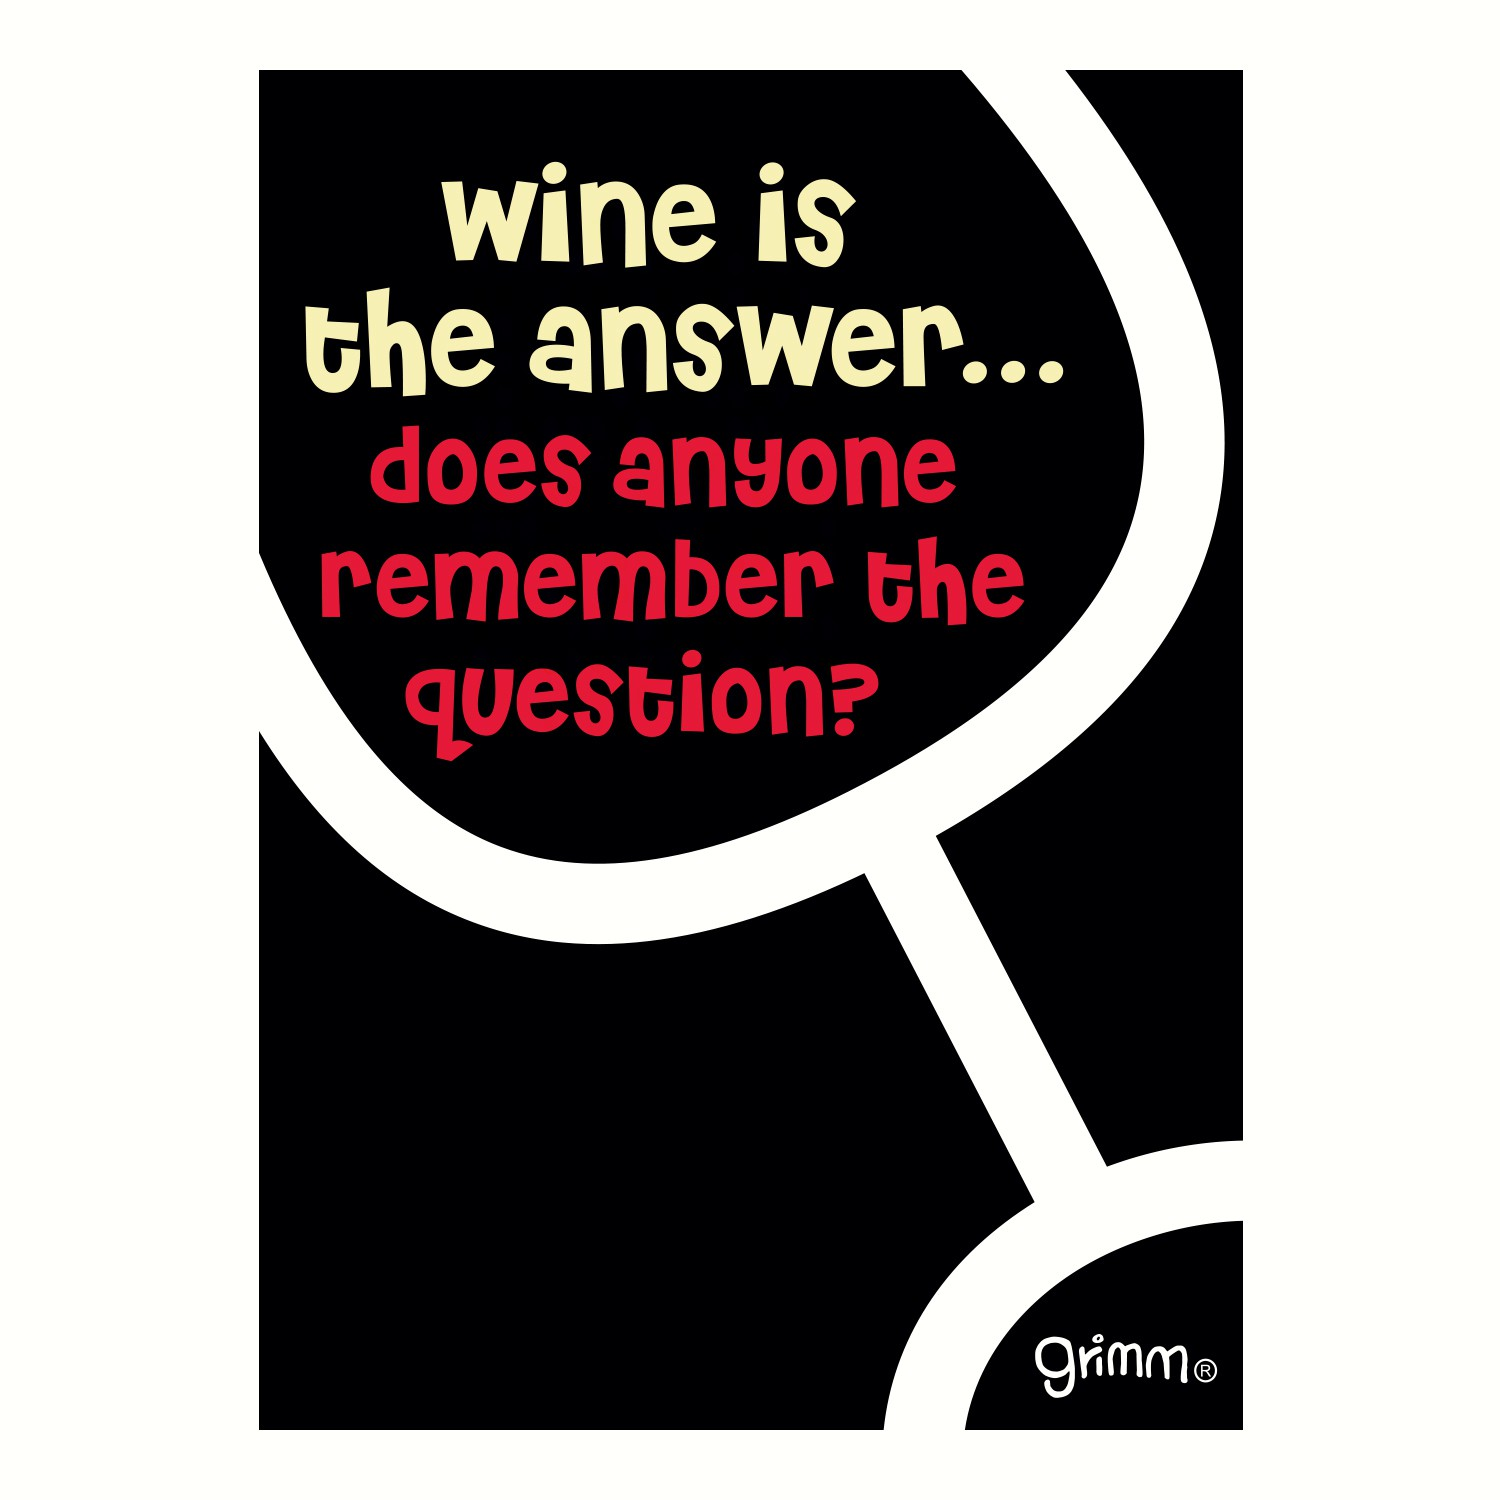 Magnet, Humorous Saying, Wine is the answer...does anyone remember the question?